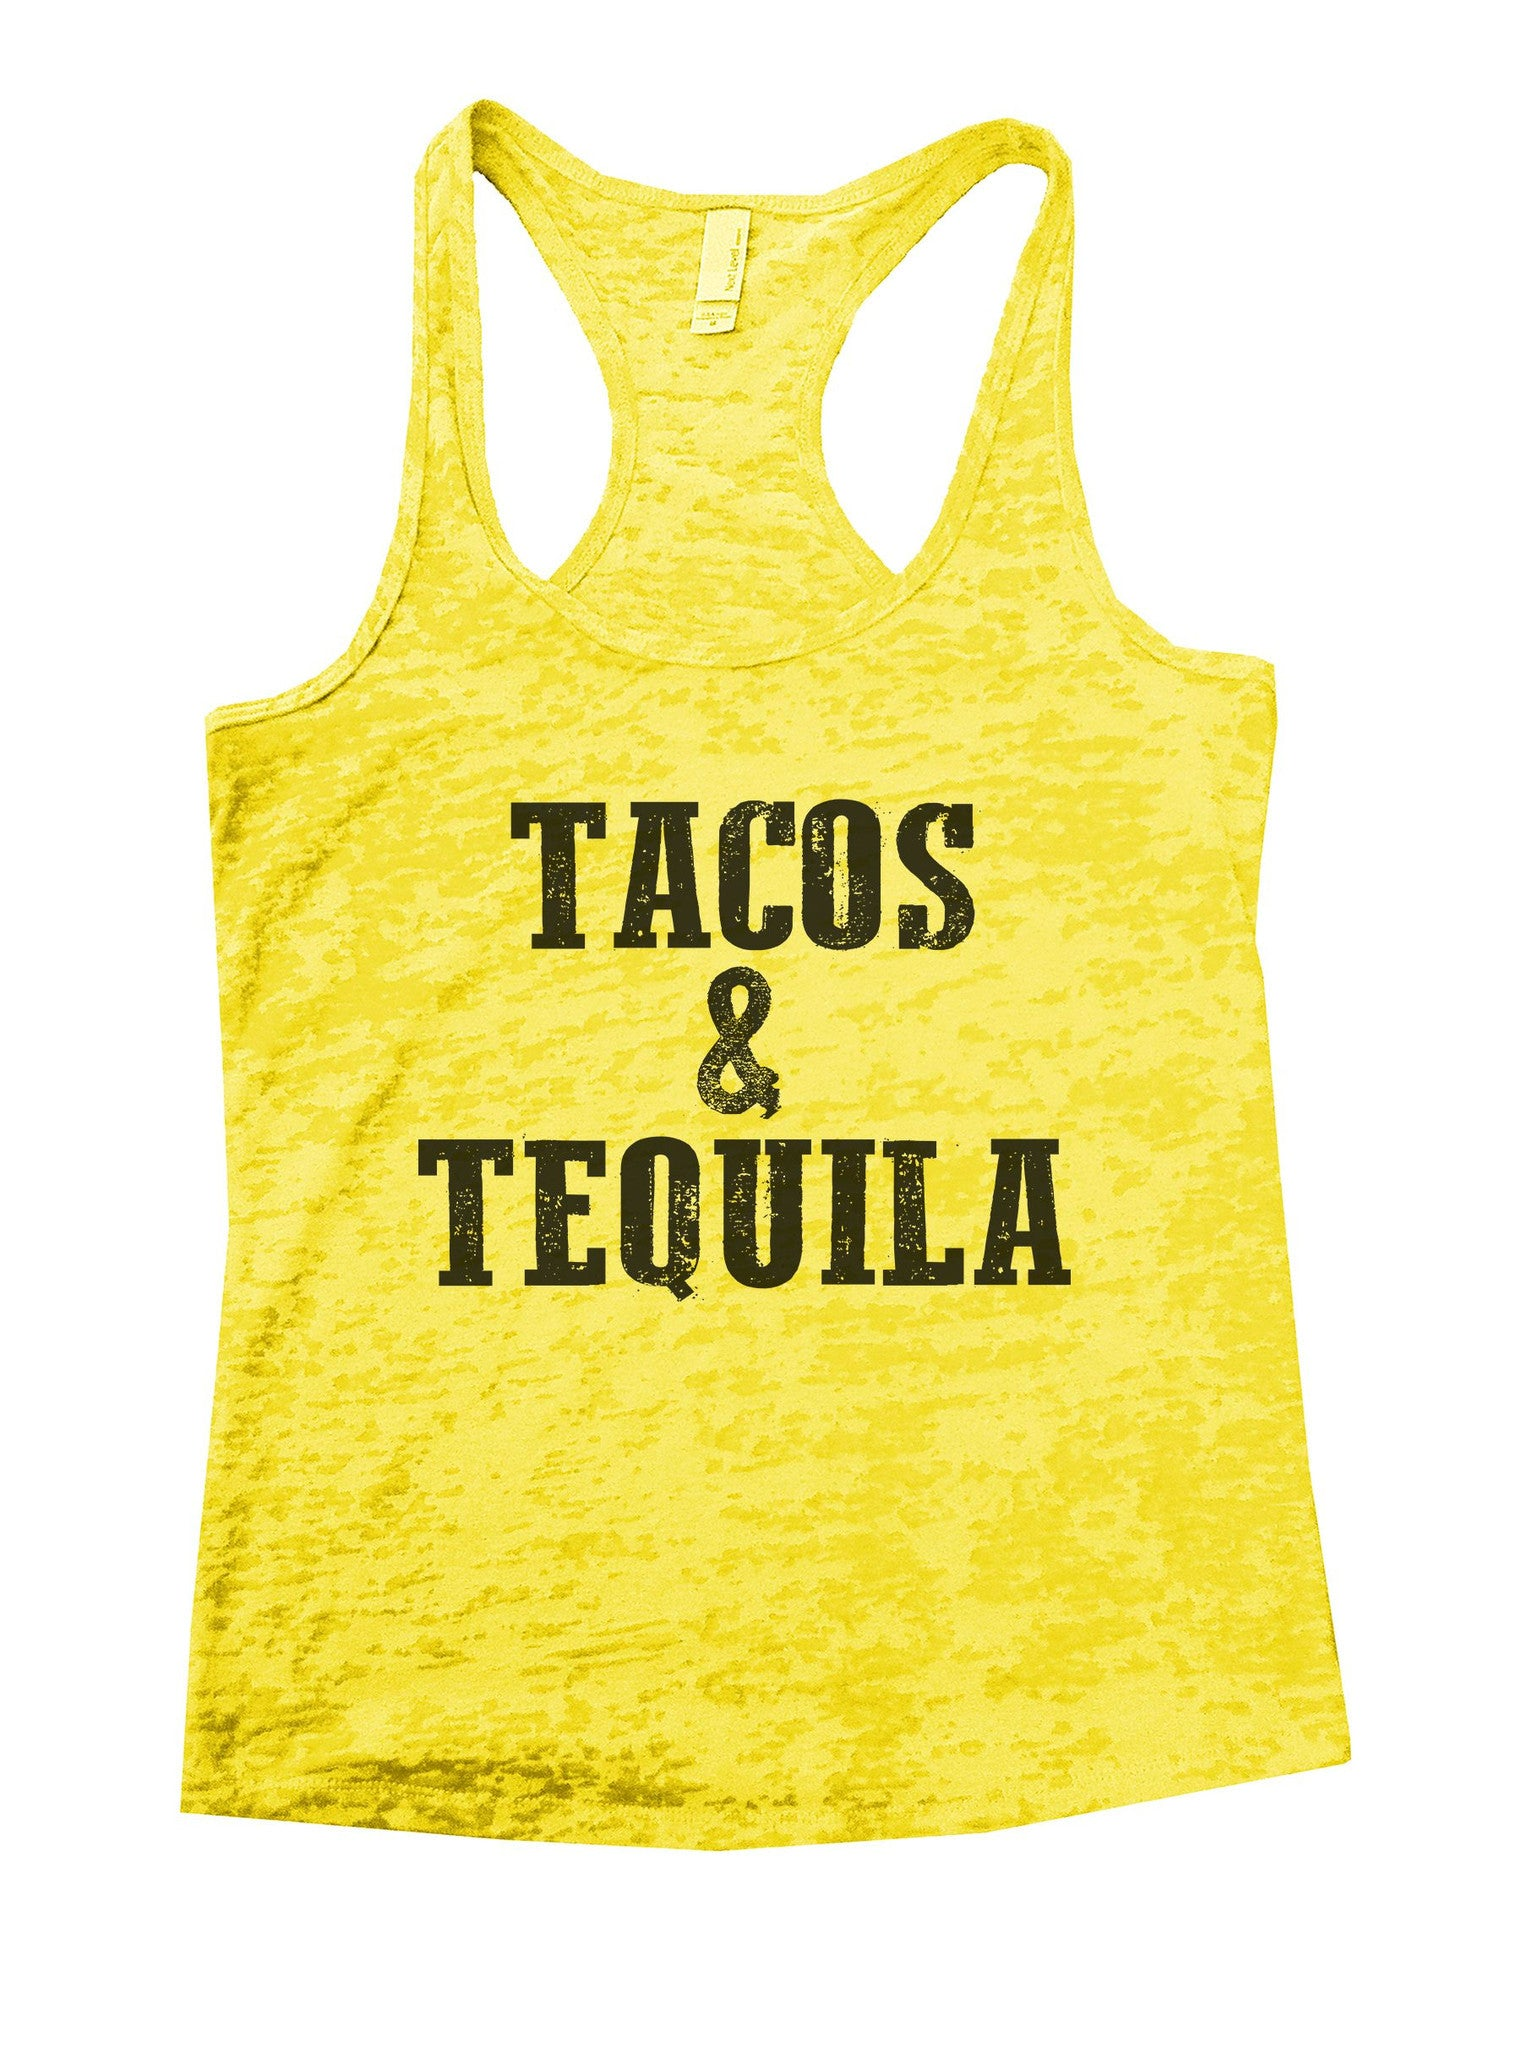 Tacos & Tequila Burnout Tank Top By BurnoutTankTops.com - 1103 - Funny Shirts Tank Tops Burnouts and Triblends  - 7